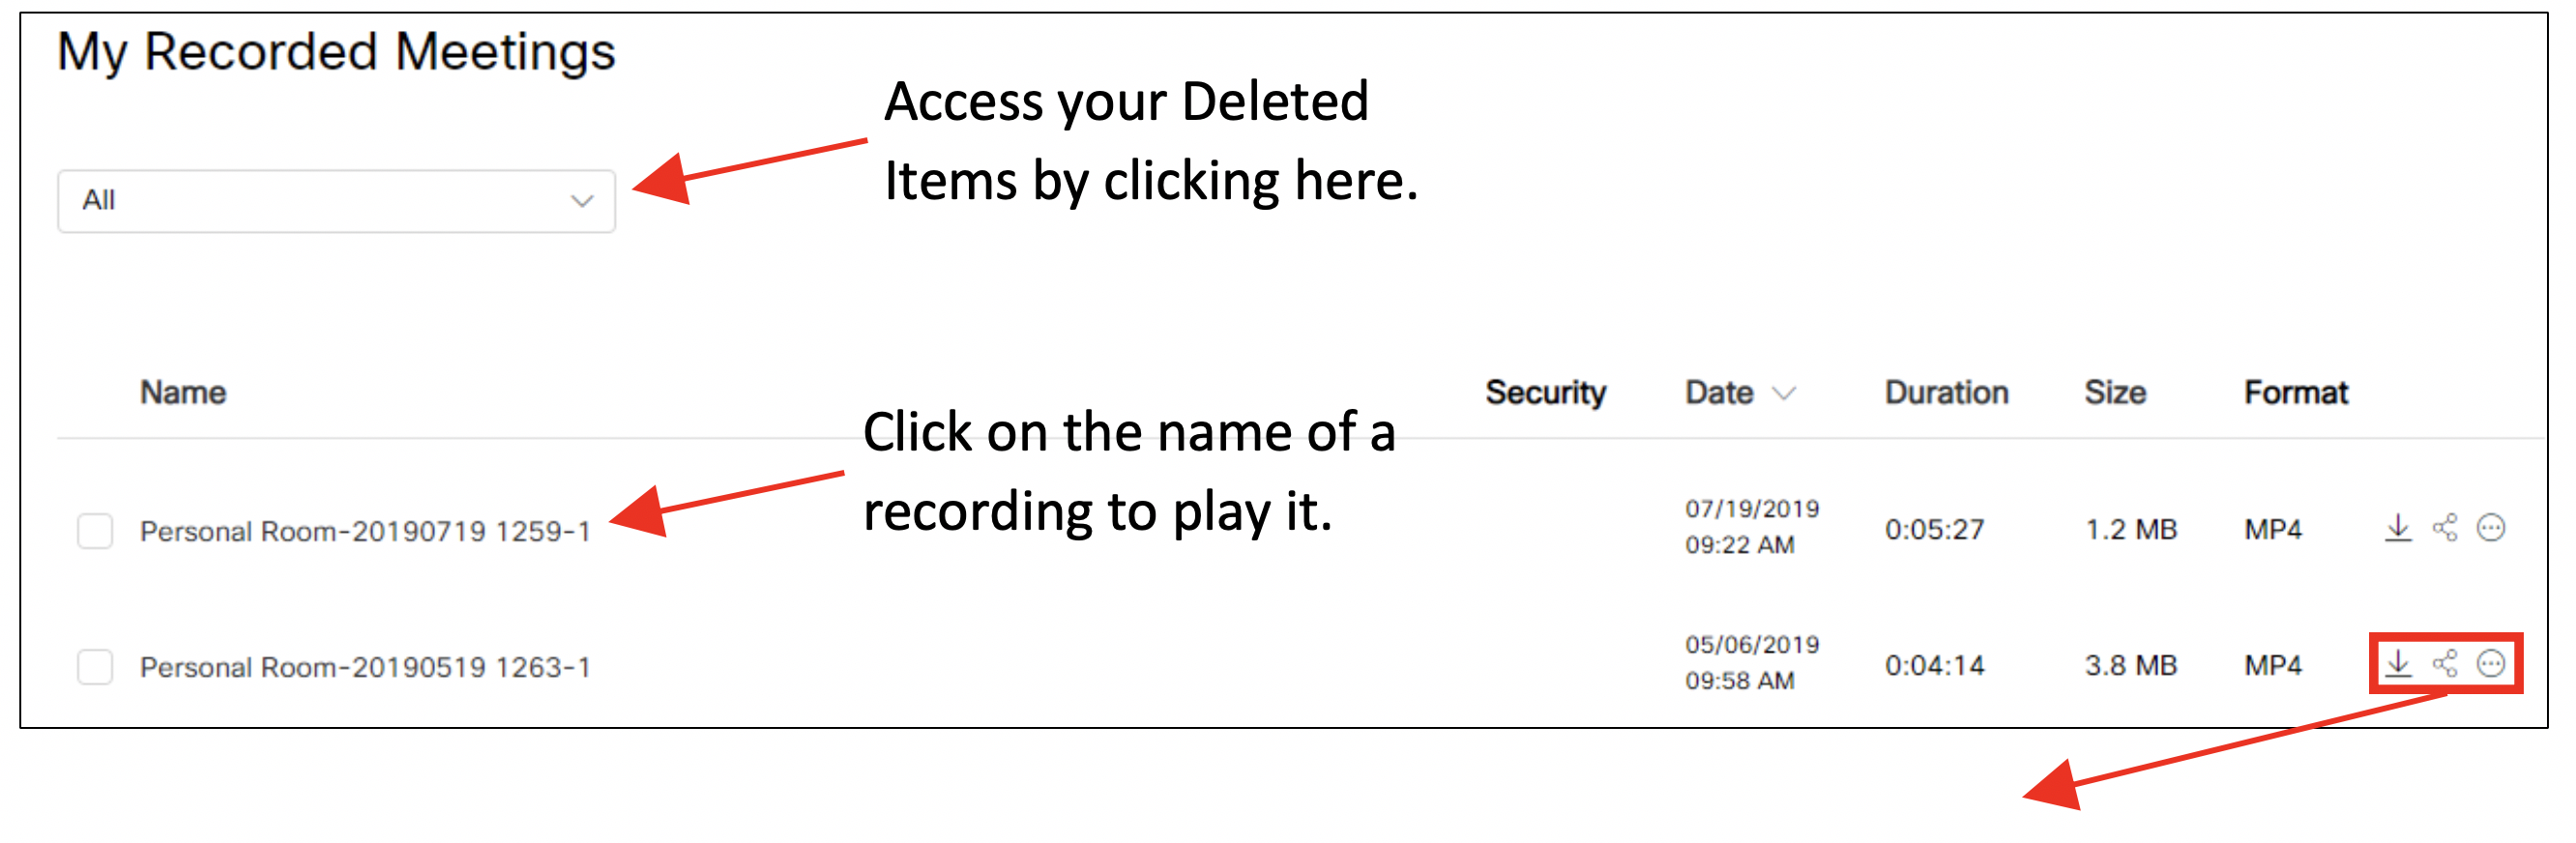 Access your deleted items by clicking the drop down at the top. Click on the name of a recording to play it.